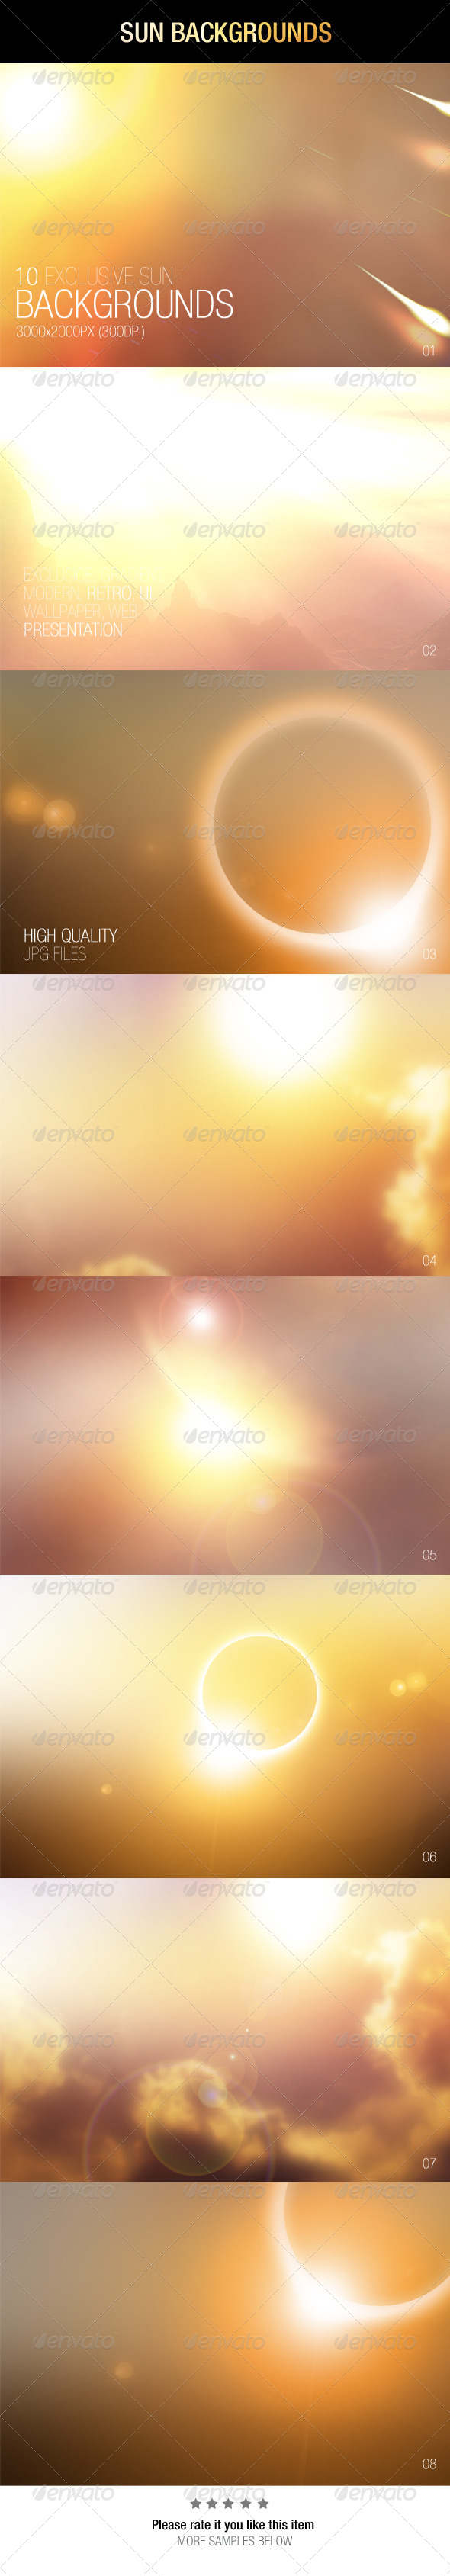 GraphicRiver Sun Backgrounds 6973251